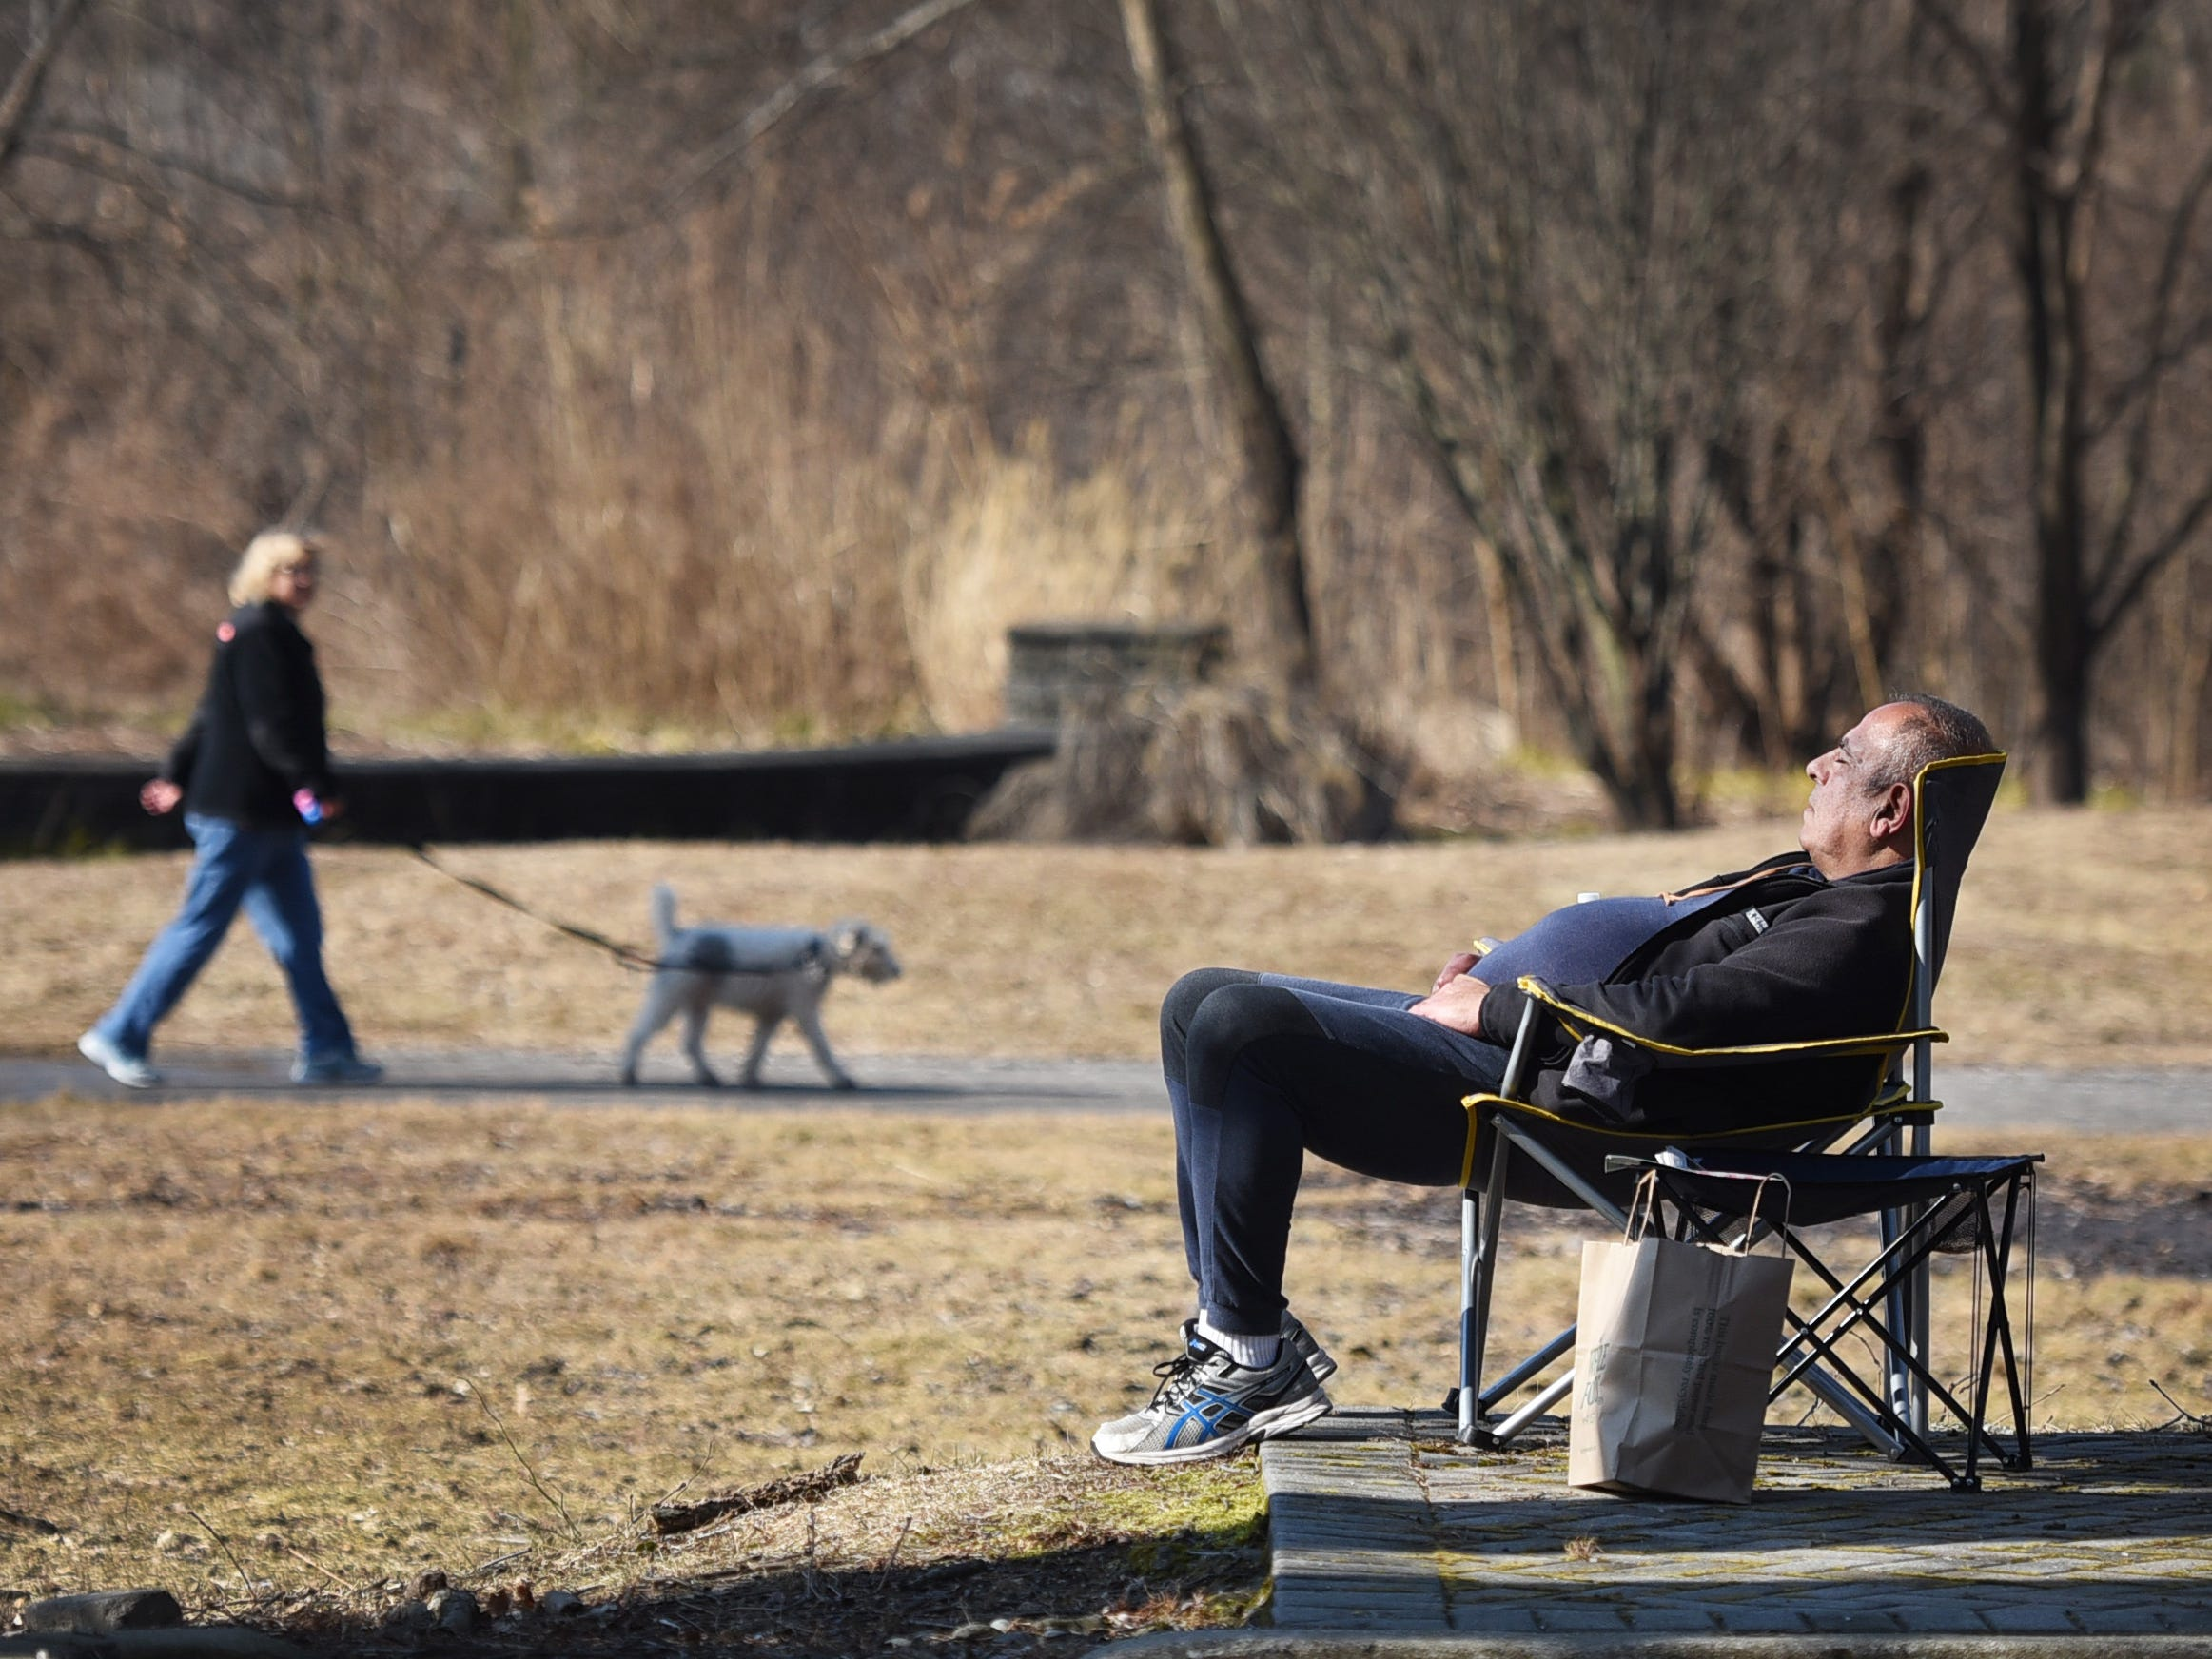 A man catches some rays as he relaxes in a chair at Van Saun County Park in Paramus on 02/05/19.